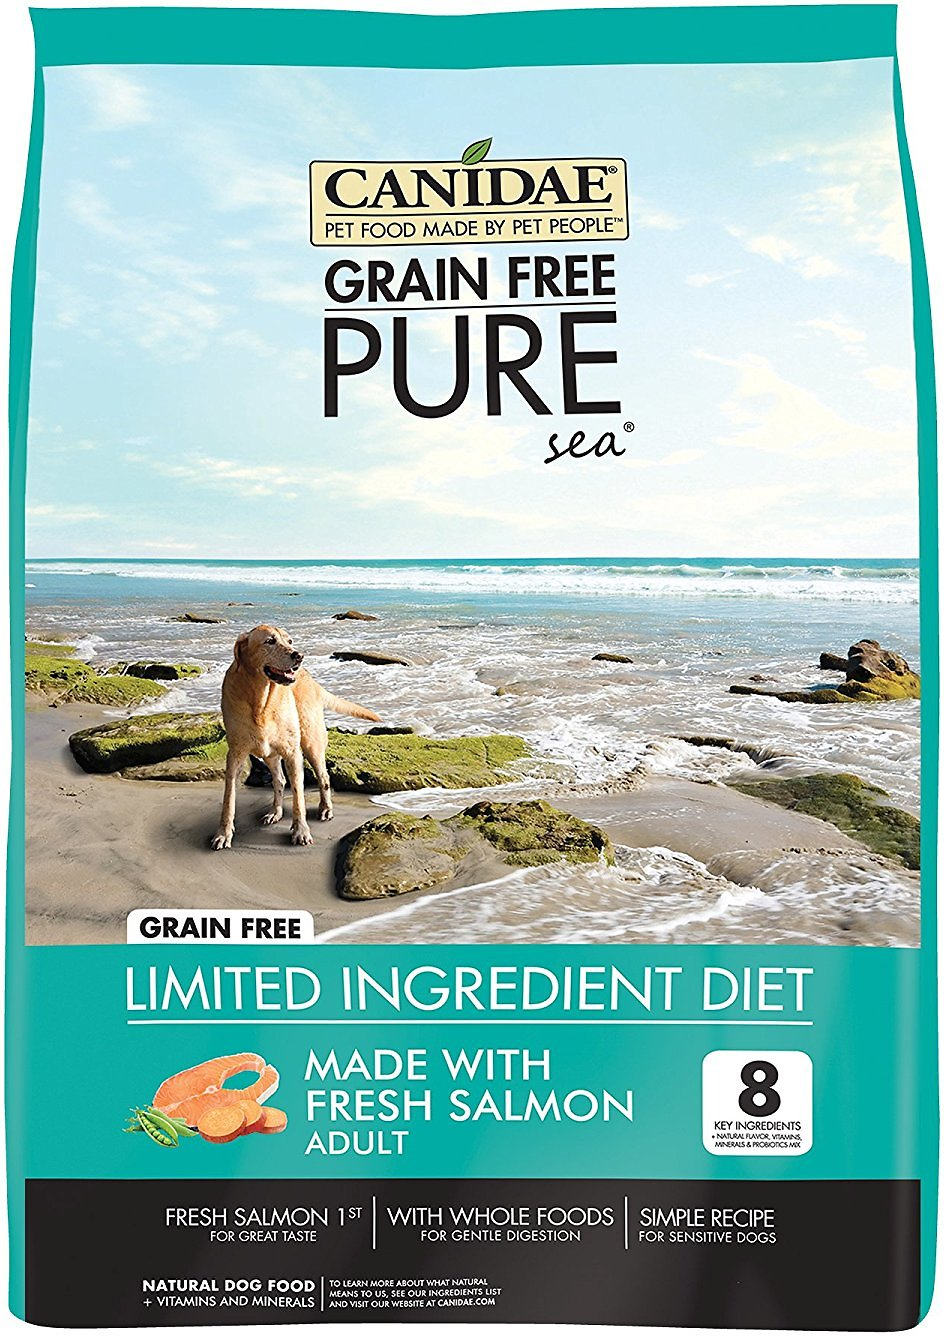 CANIDAE Grain-Free PURE Sea with Salmon Limited Ingredient Diet Adult Dry Dog Food Image